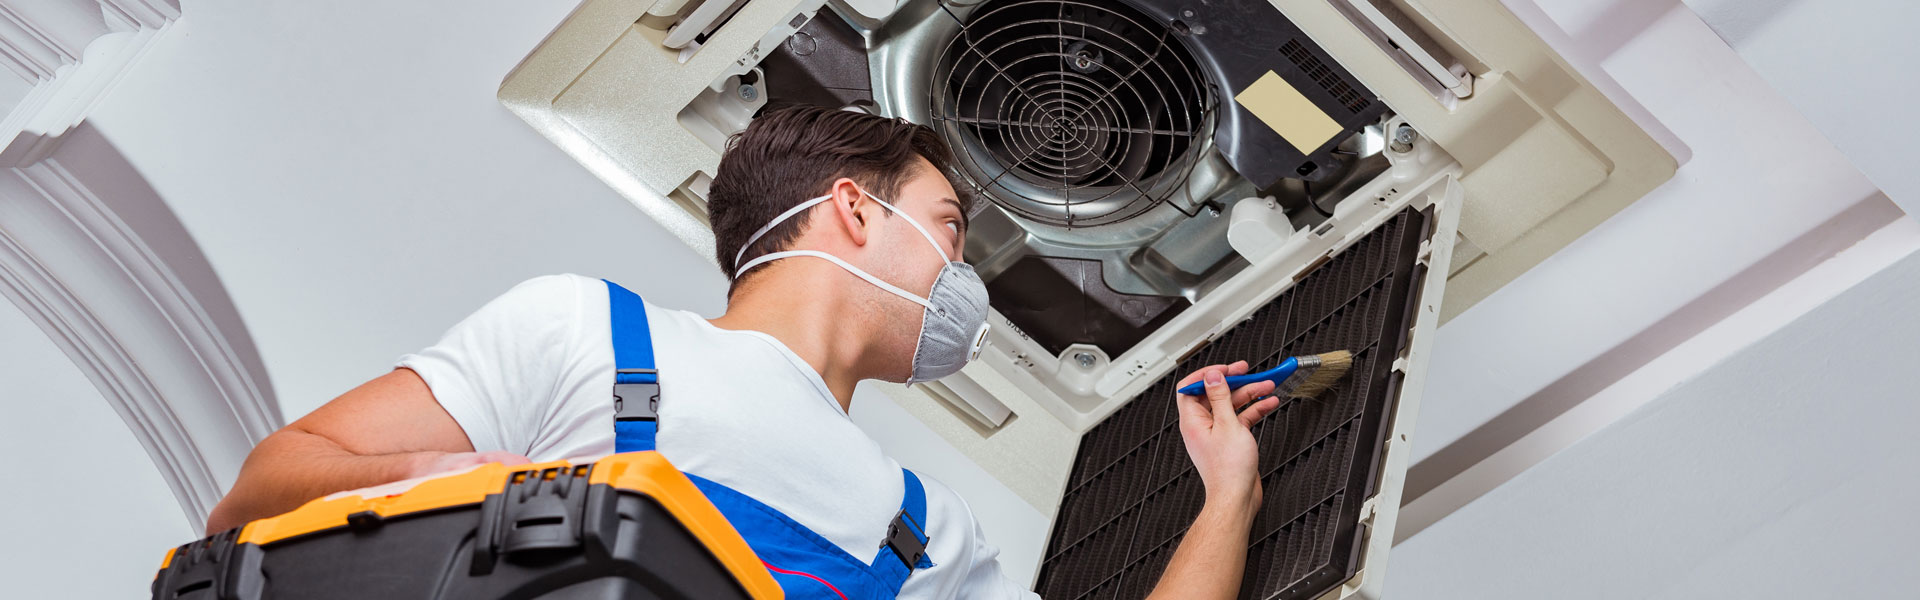 Worker Servicing Ceiling AC